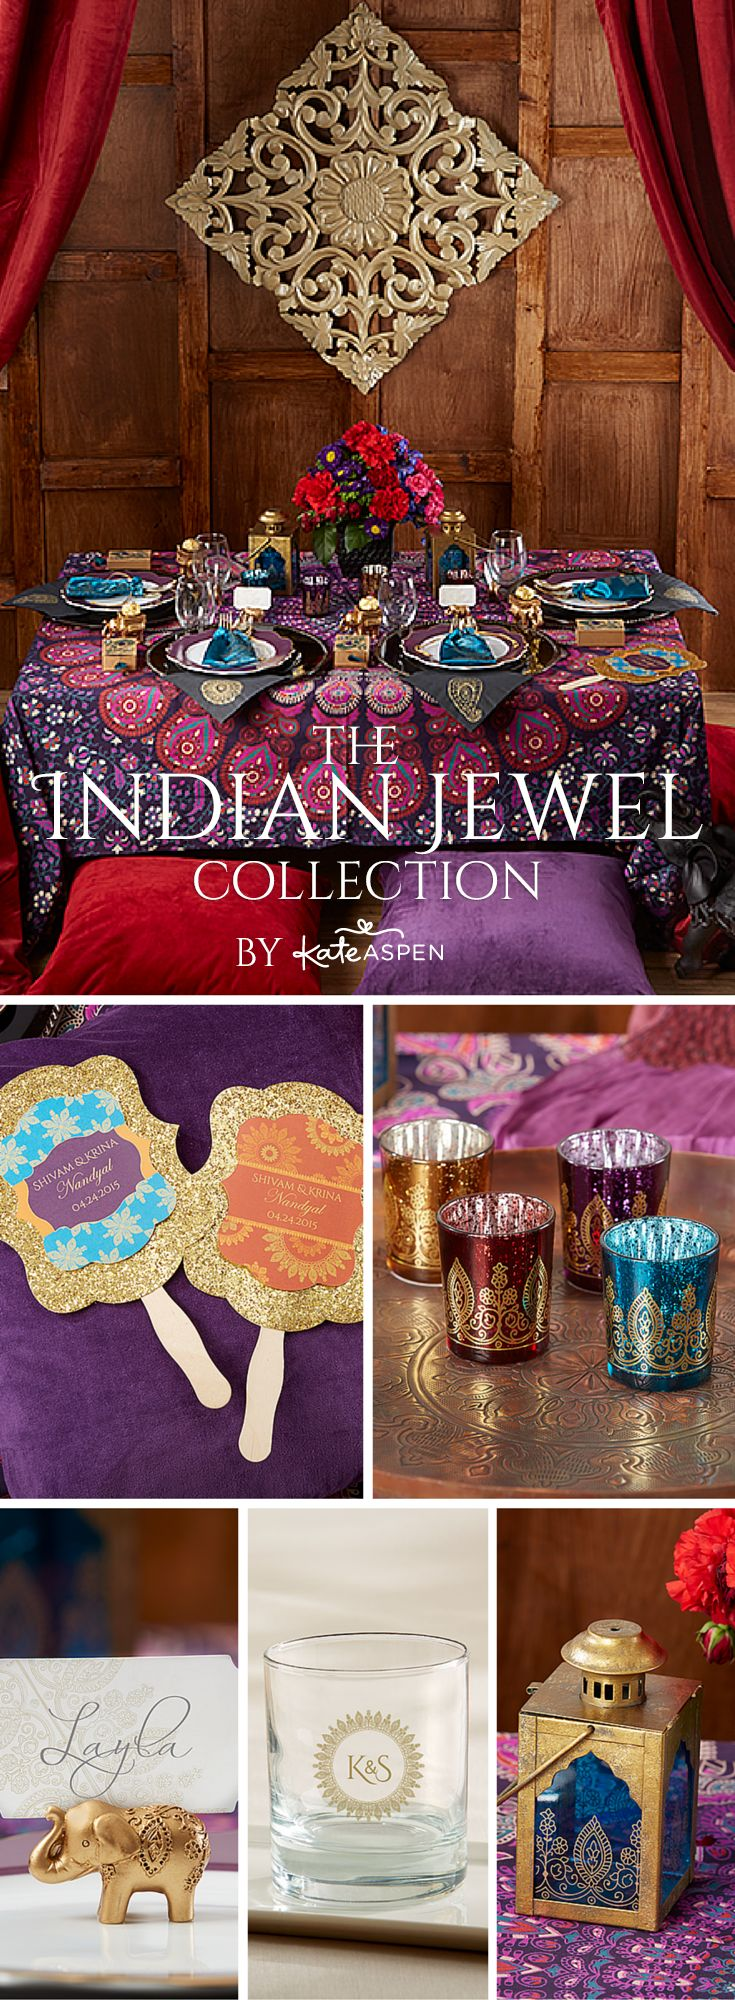 best 20 indian decoration ideas on pinterest bohemian furniture featuring intricately detailed elephant favors and other exotic indian decor in a jewel tone color scheme